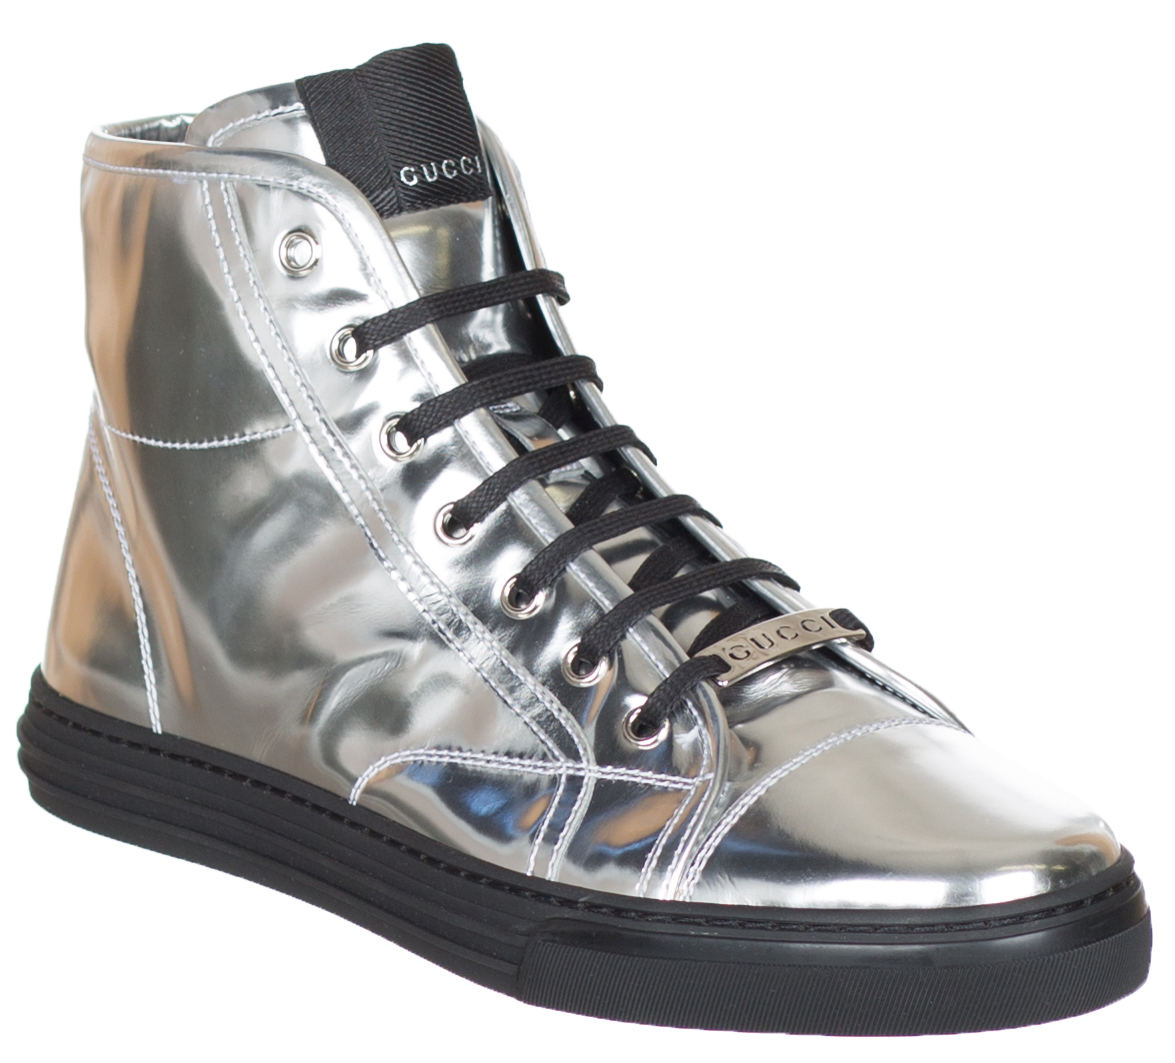 c15c00d0d Gucci Women's GG Silver Glow Light Leather High Top Sneakers Shoes